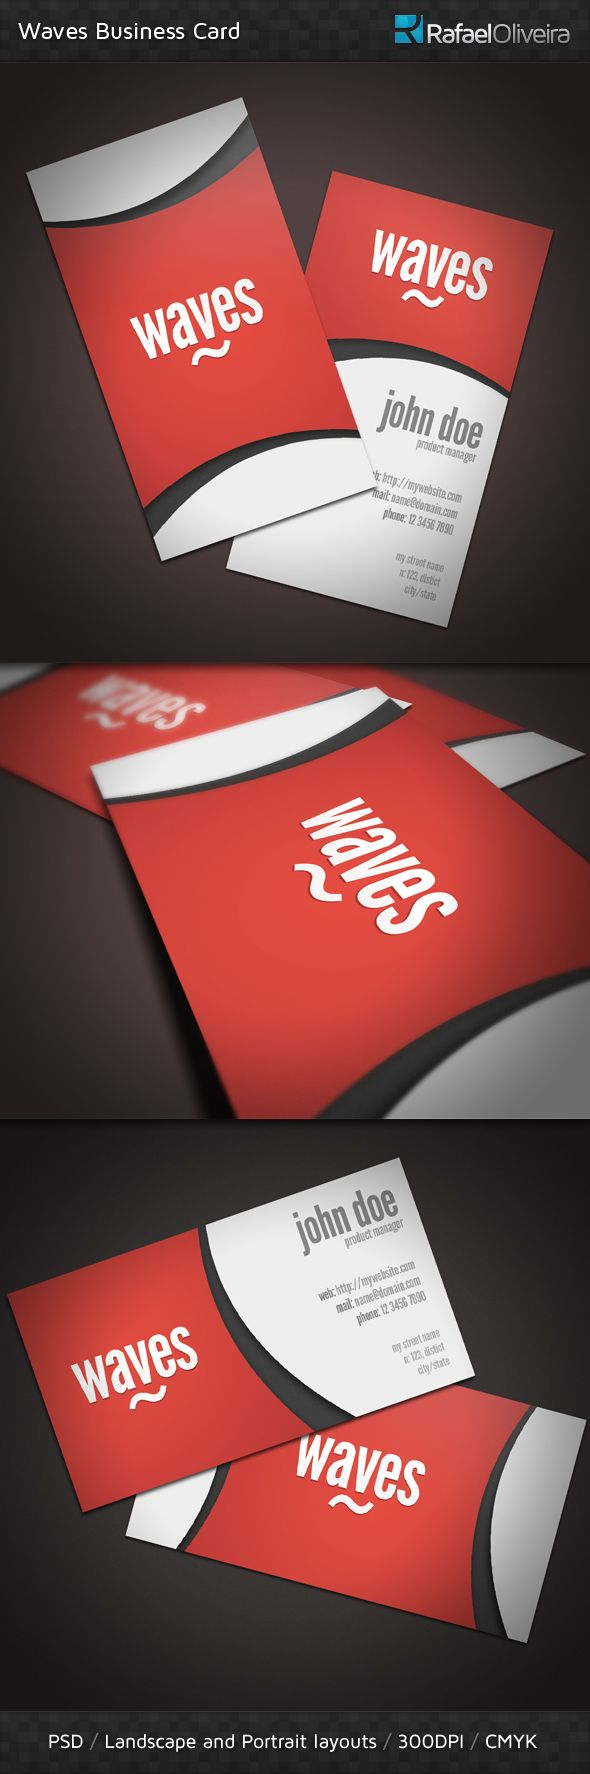 The 16 best business cards images on pinterest business cards buy waves business cards by rafaeloliveira on graphicriver waves is a beauty looking template with great colors and a creative design its perfect for reheart Images